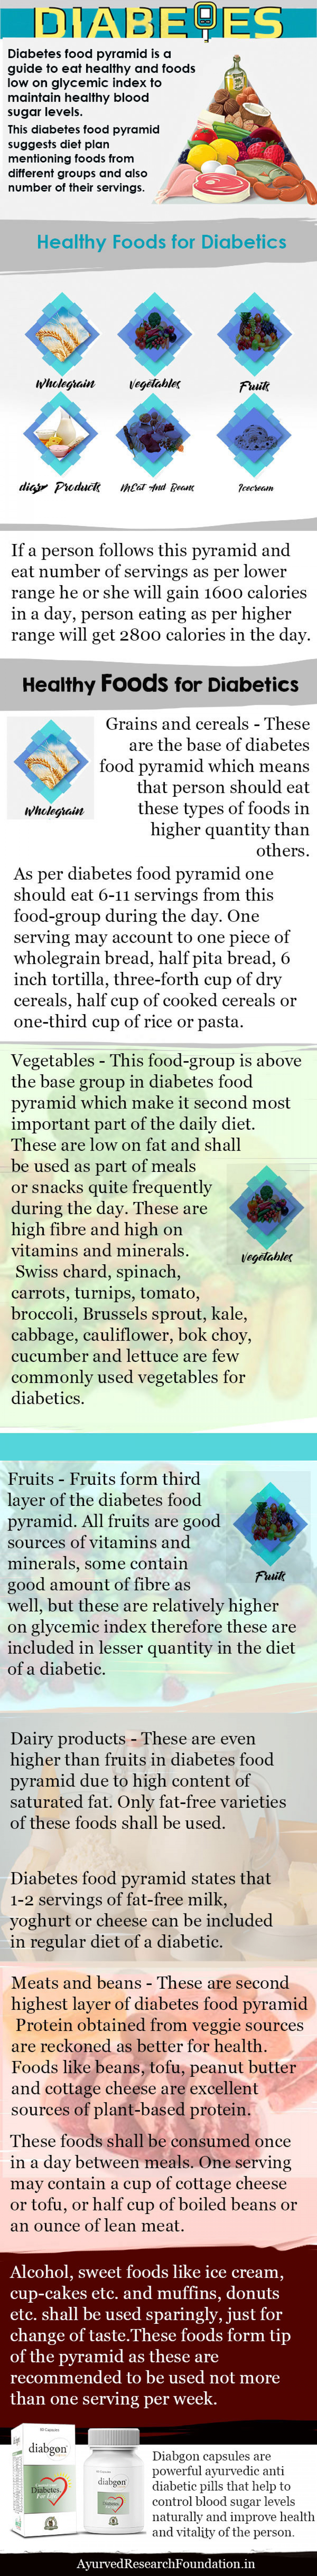 Diabetes Food Pyramid Infographic, Healthy Diet for Diabetic Patients Infographic